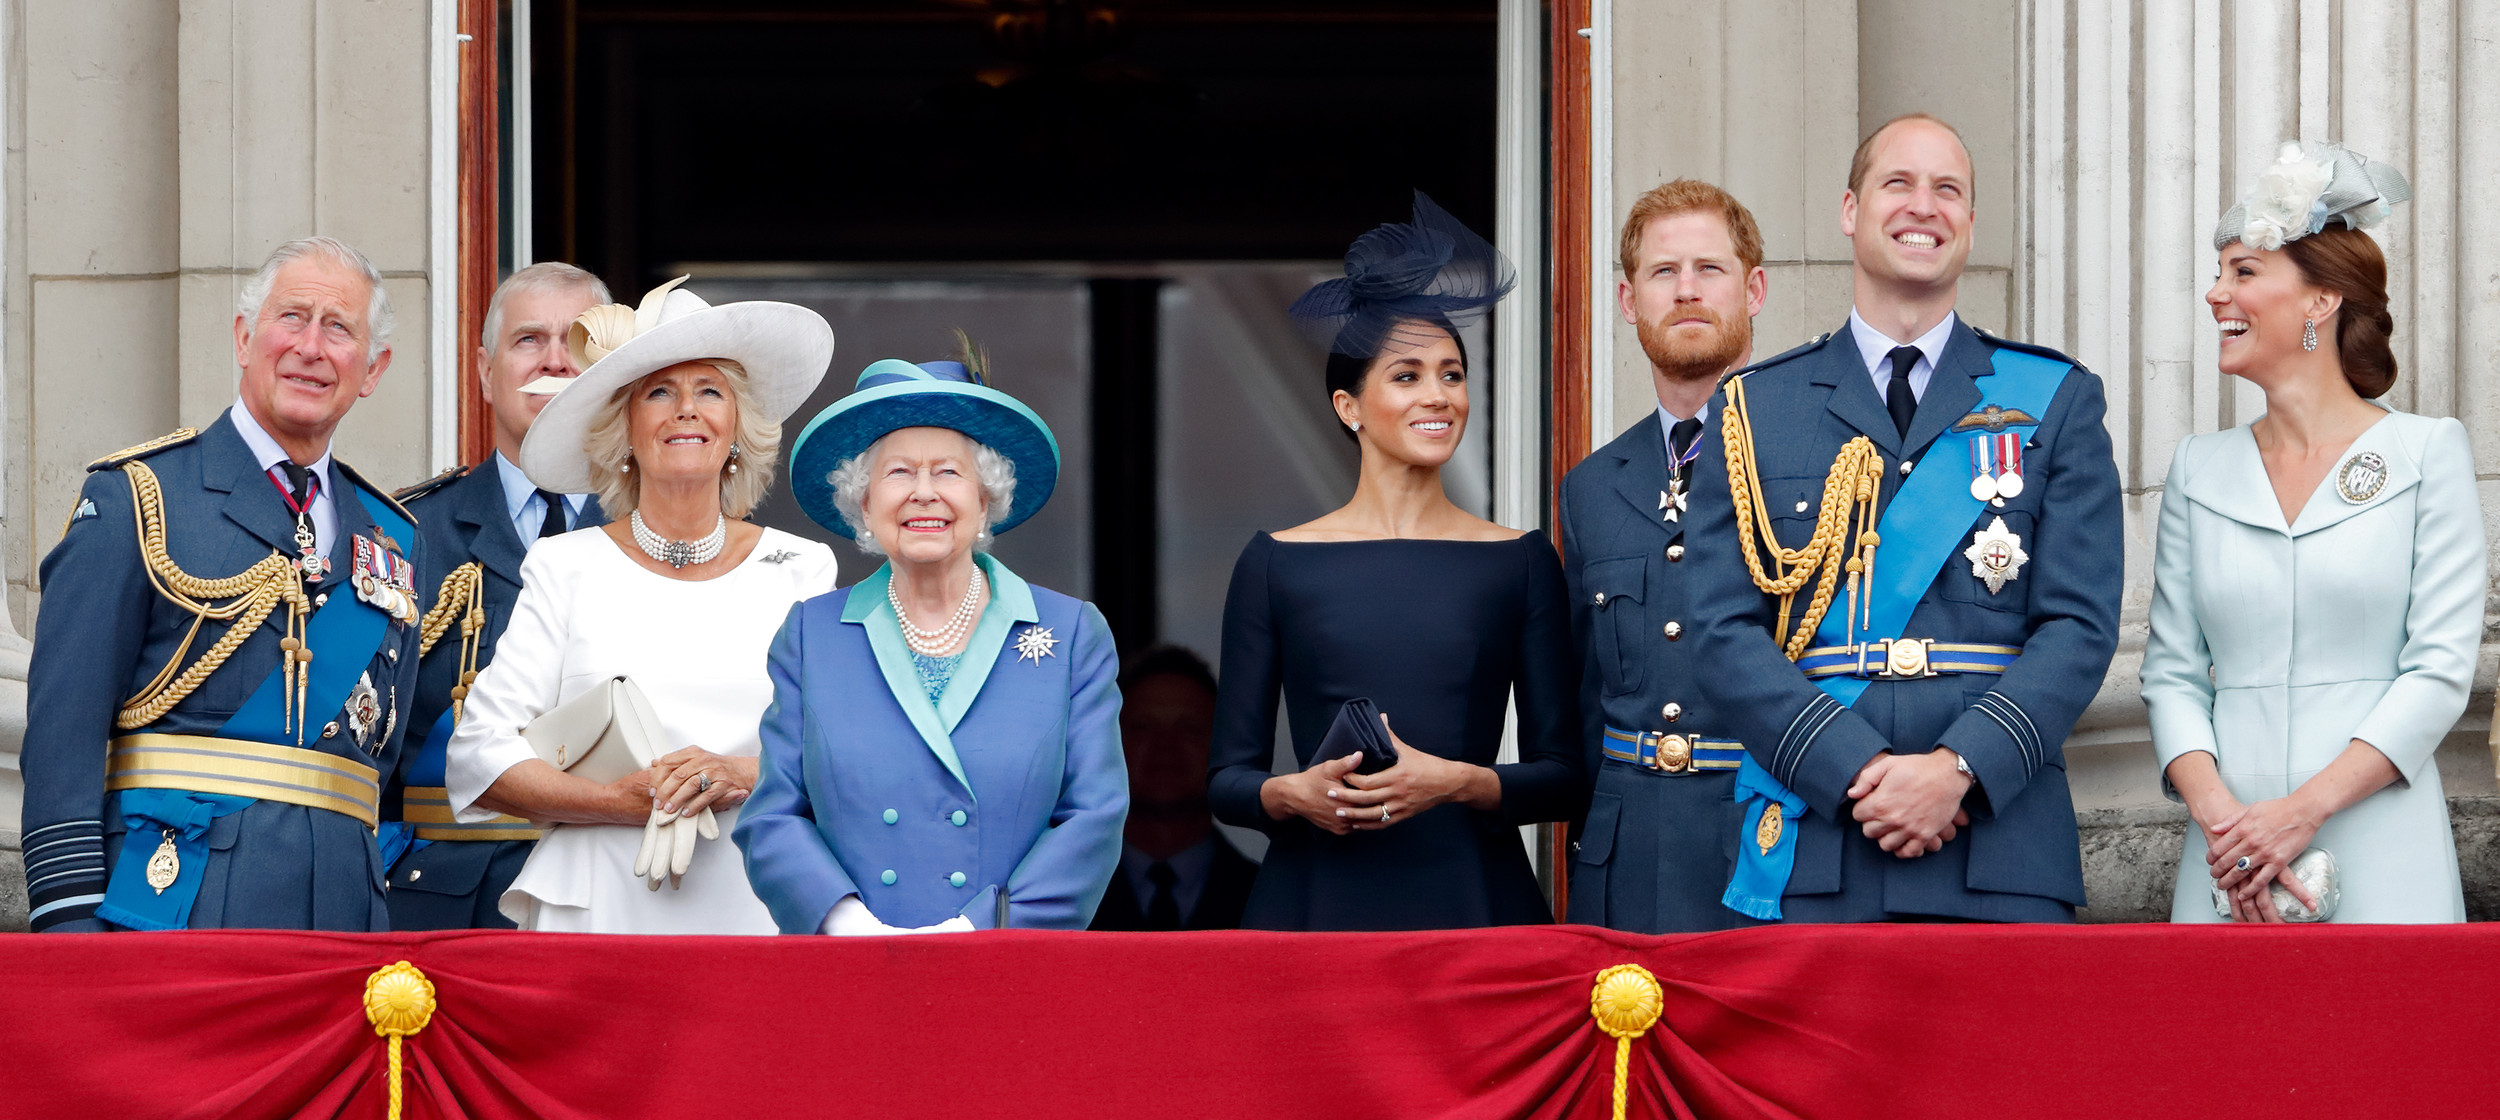 LONDON, UNITED KINGDOM - JULY 10: (EMBARGOED FOR PUBLICATION IN UK NEWSPAPERS UNTIL 24 HOURS AFTER CREATE DATE AND TIME) Prince Charles, Prince of Wales, Camilla, Duchess of Cornwall, Queen Elizabeth II, Meghan, Duchess of Sussex, Prince Harry, Duke of...